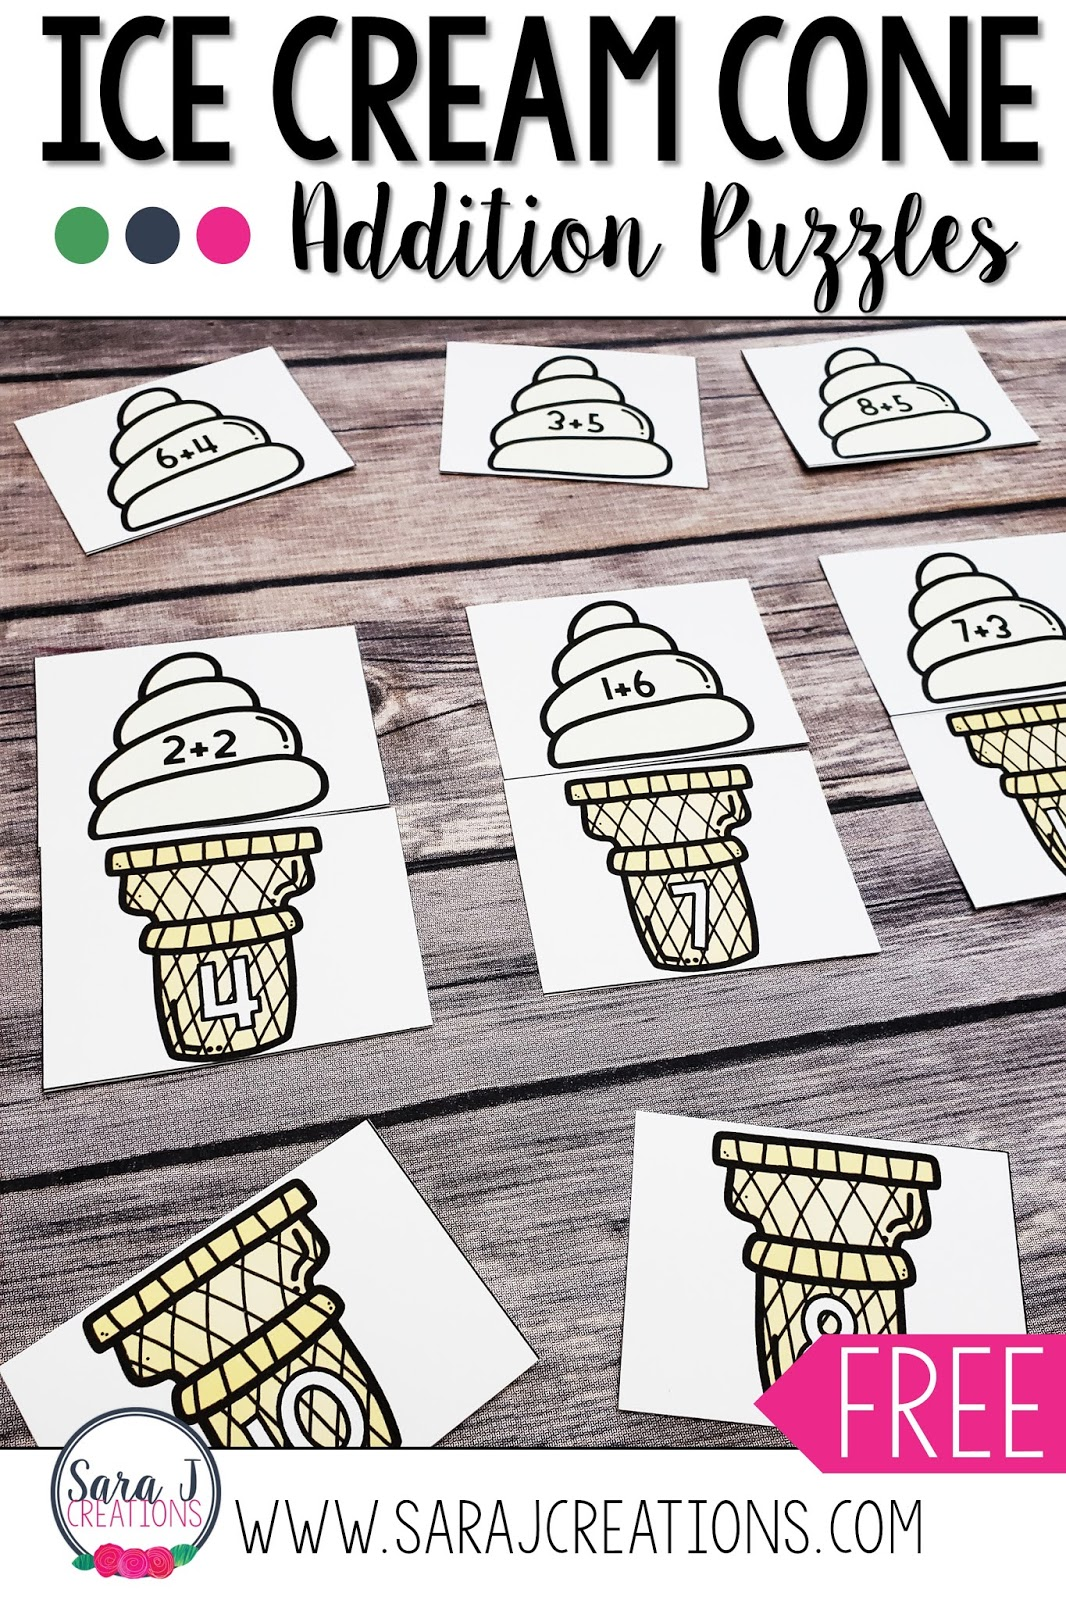 These free ice cream addition puzzles are perfect for helping your kindergartner or first grader practice their math facts. Check out the other ice cream themed freebies included in this post.